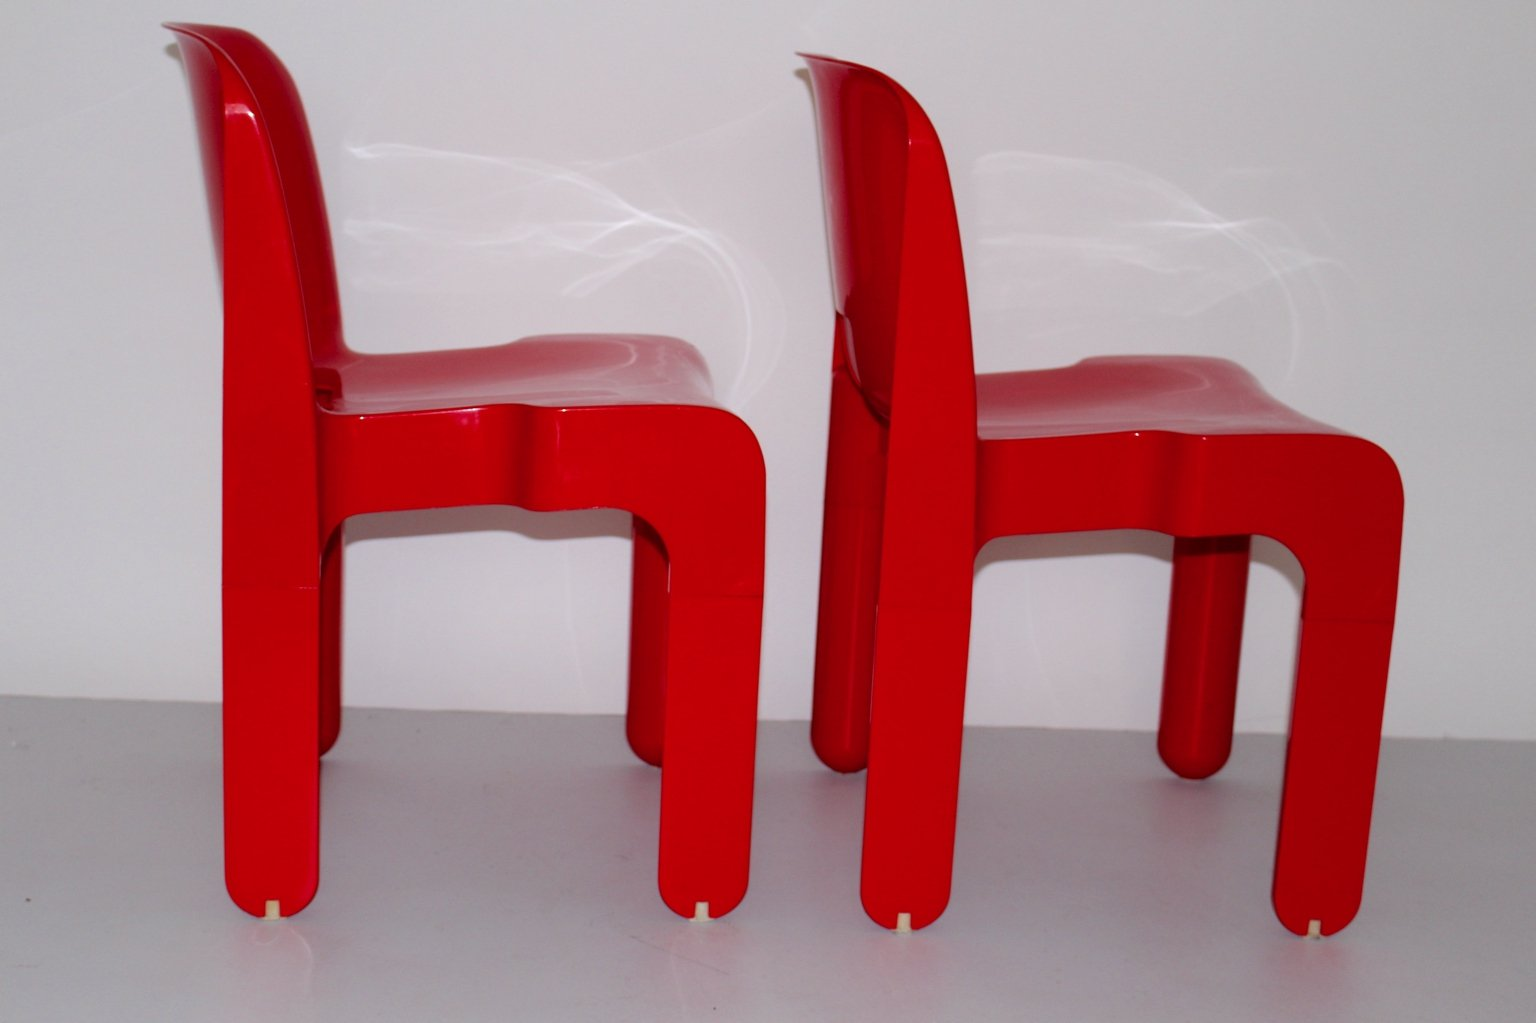 Model 4860 universale plastic chairs by joe colombo for for Kartell plastic chair